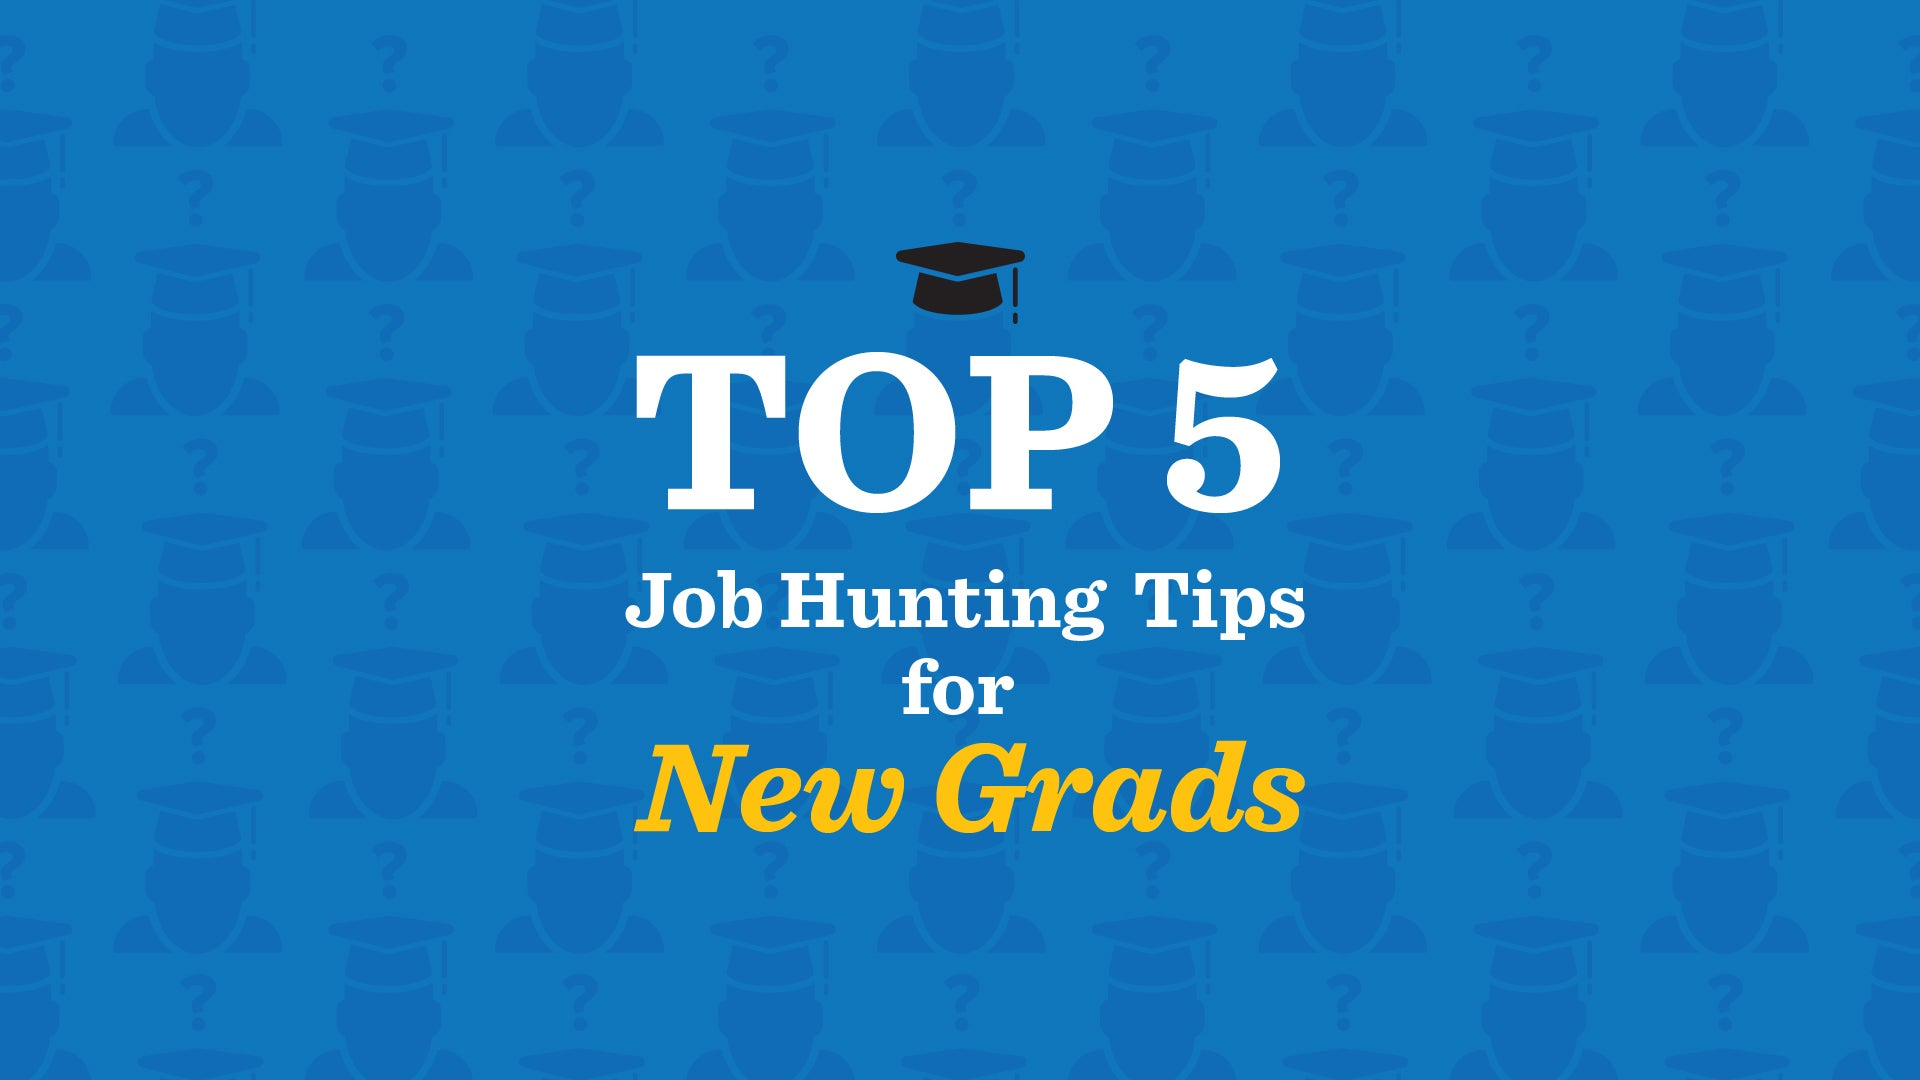 Top 5 job hunting tips for new grads